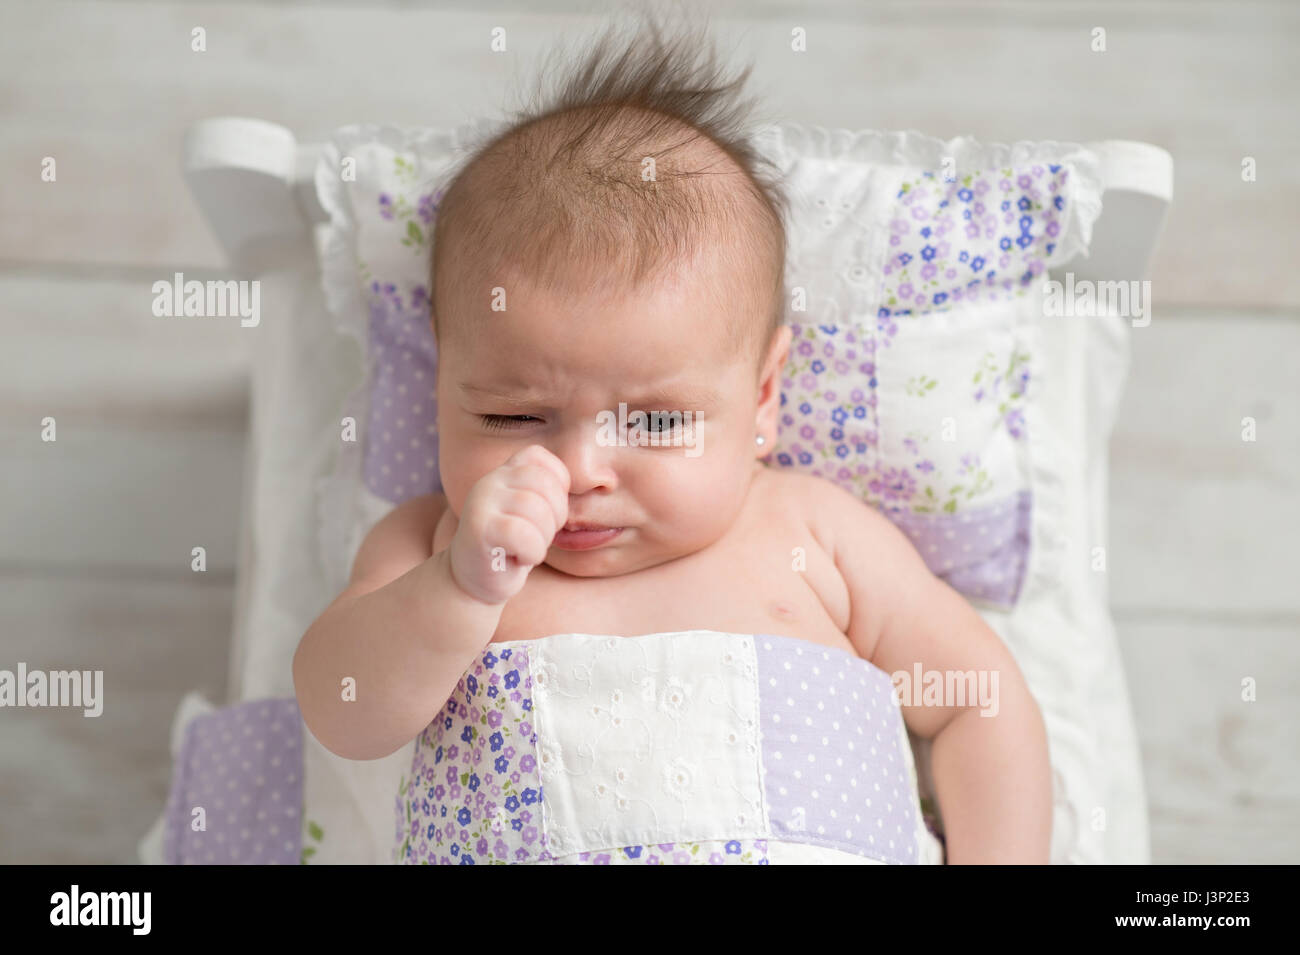 An overhead shot of a four month old, sulking, baby girl. She is lying in a tiny bed with quilted bedding. - Stock Image